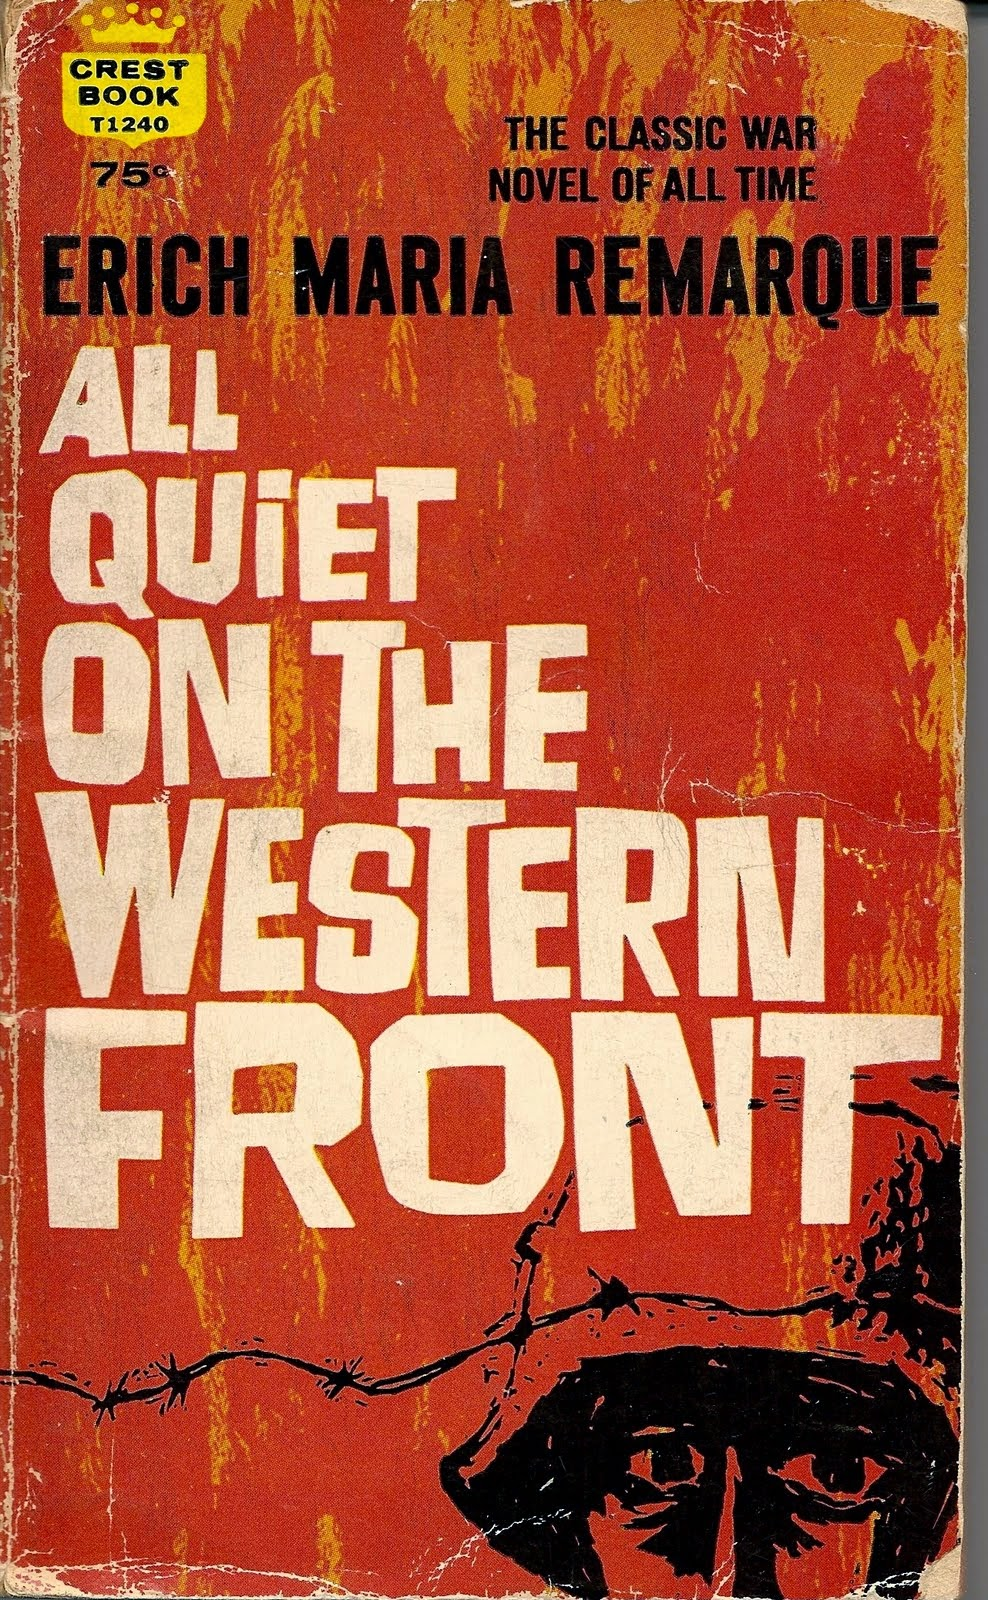 an analysis of the characters and battles in all quiet on the western front by erich maria remarque Summaries and analysis of major themes, characters all quiet on the western front by erich maria remarque all quiet all quiet on the western front.